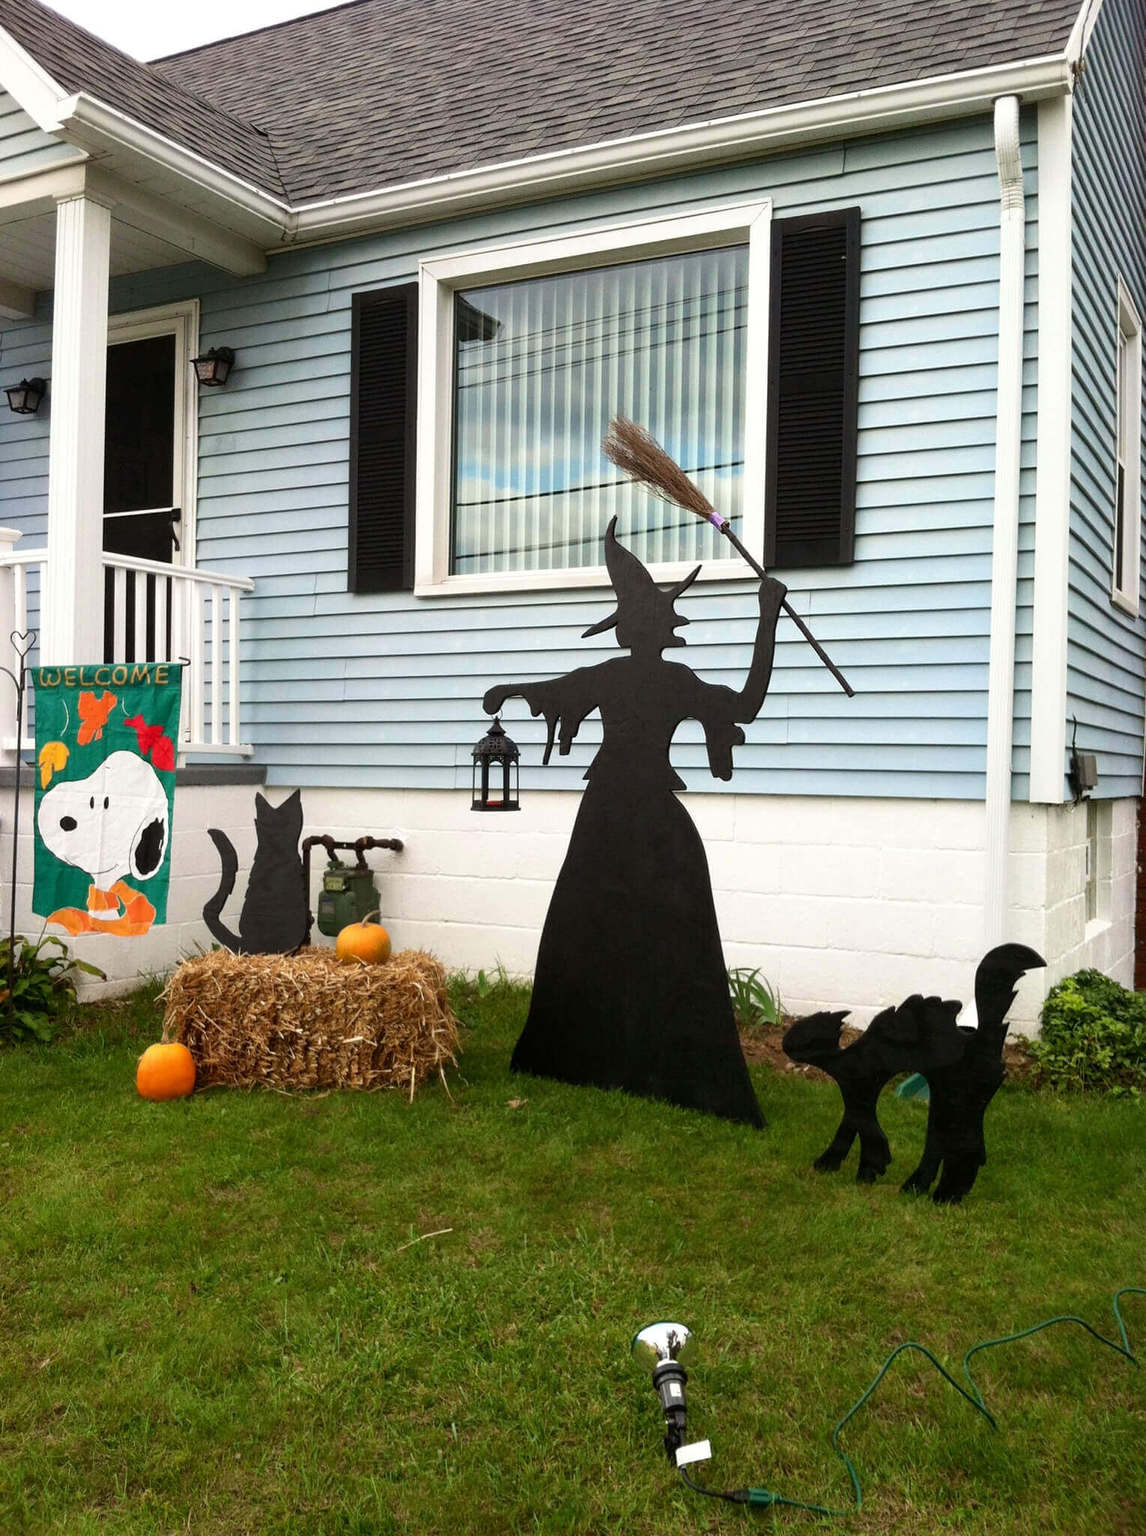 Exquisite Outdoor Halloween Decoration Ideas - Festival ... on Lawn Decorating Ideas id=88588